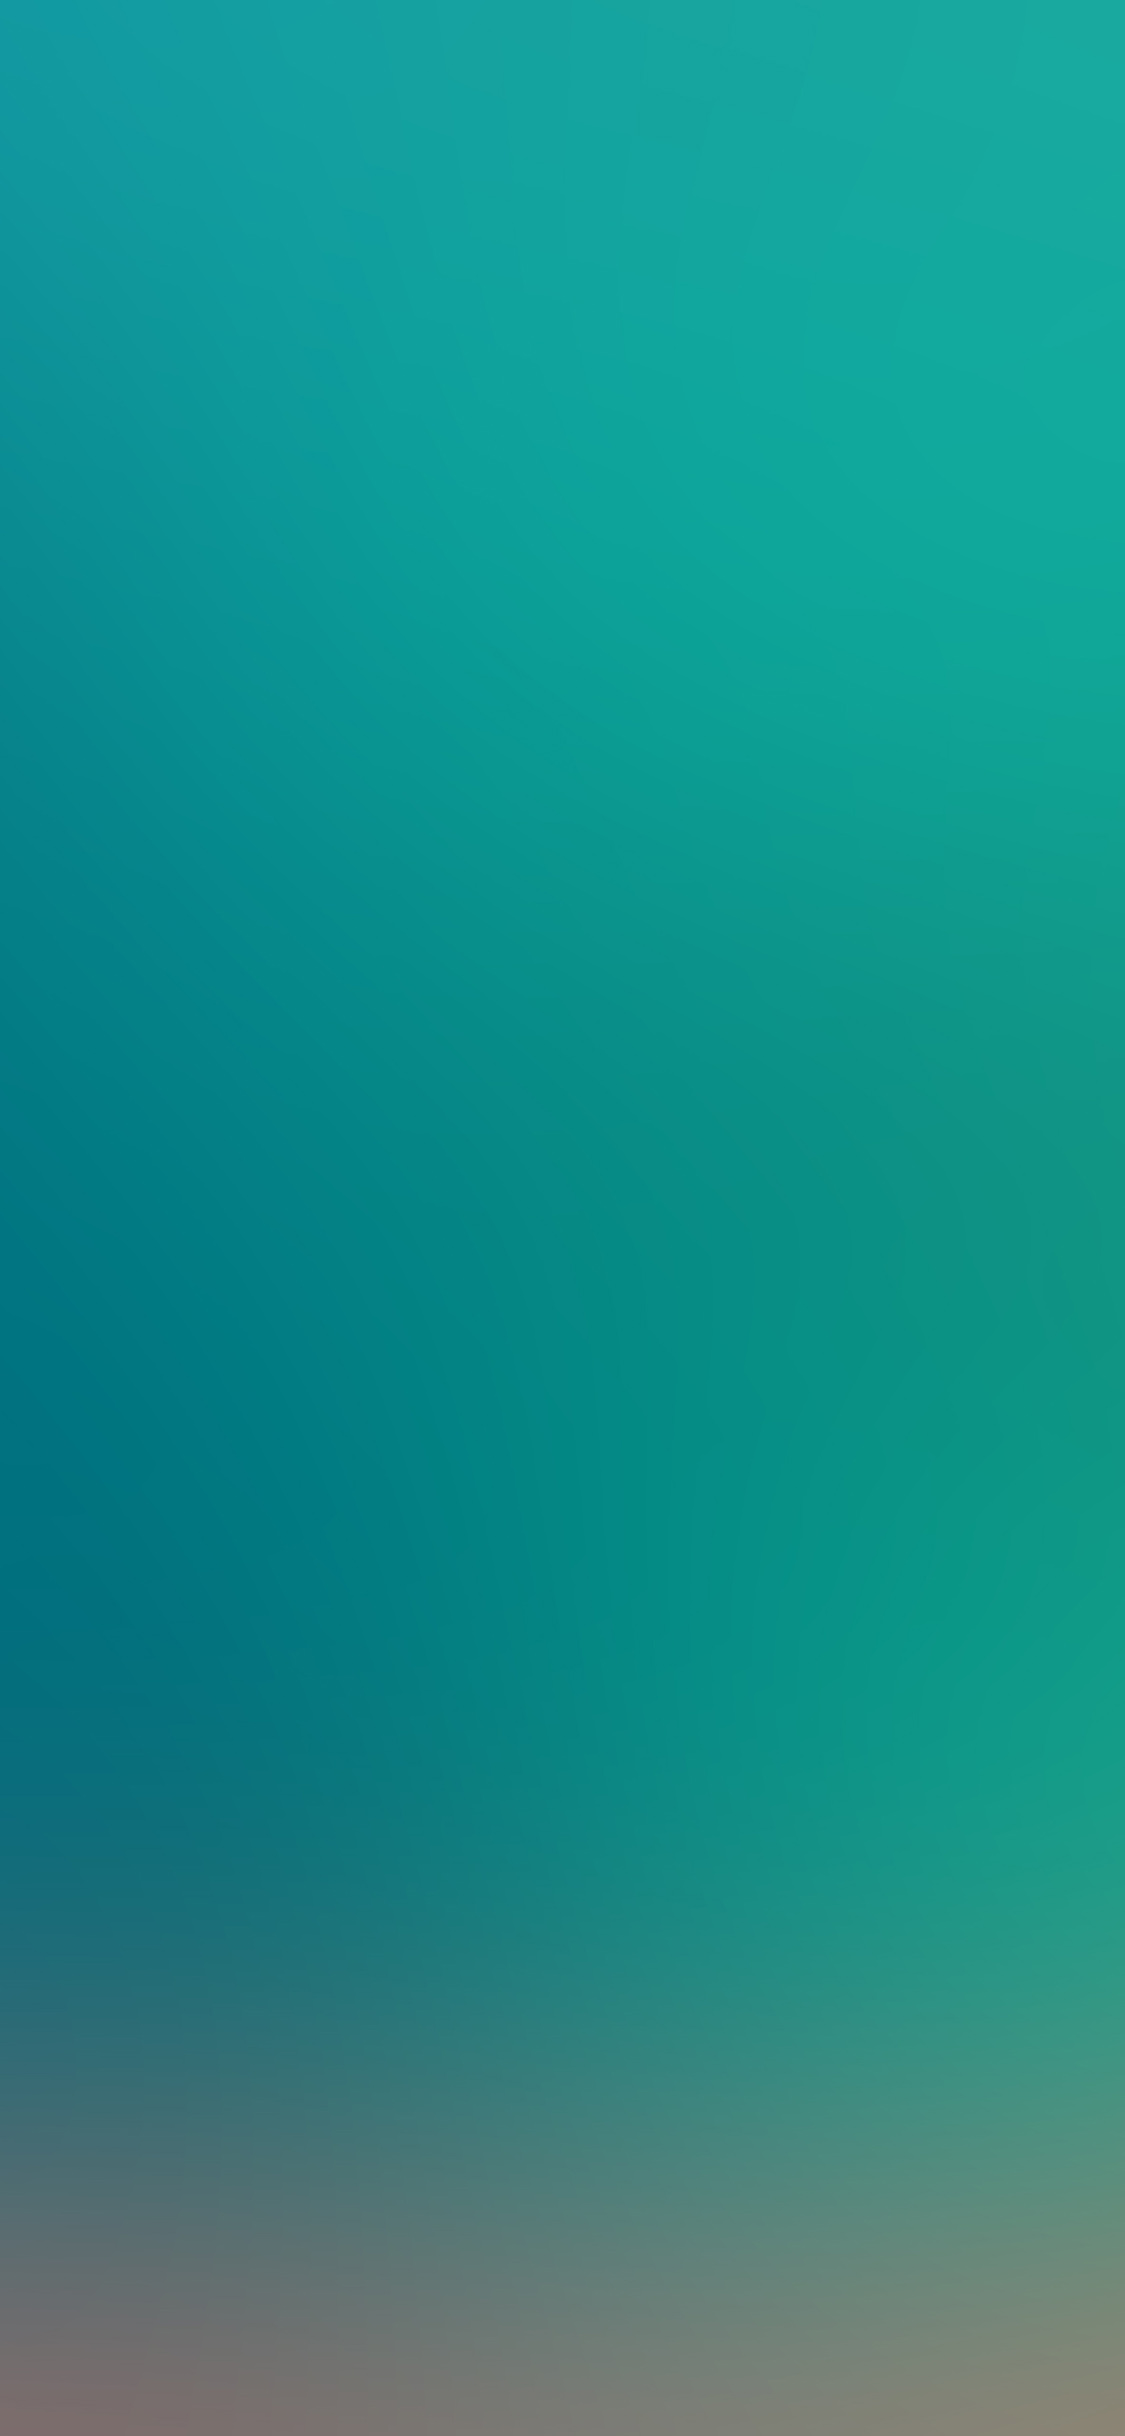 iPhoneXpapers.com-Apple-iPhone-wallpaper-si72-green-emerald-blue-gradation-blur